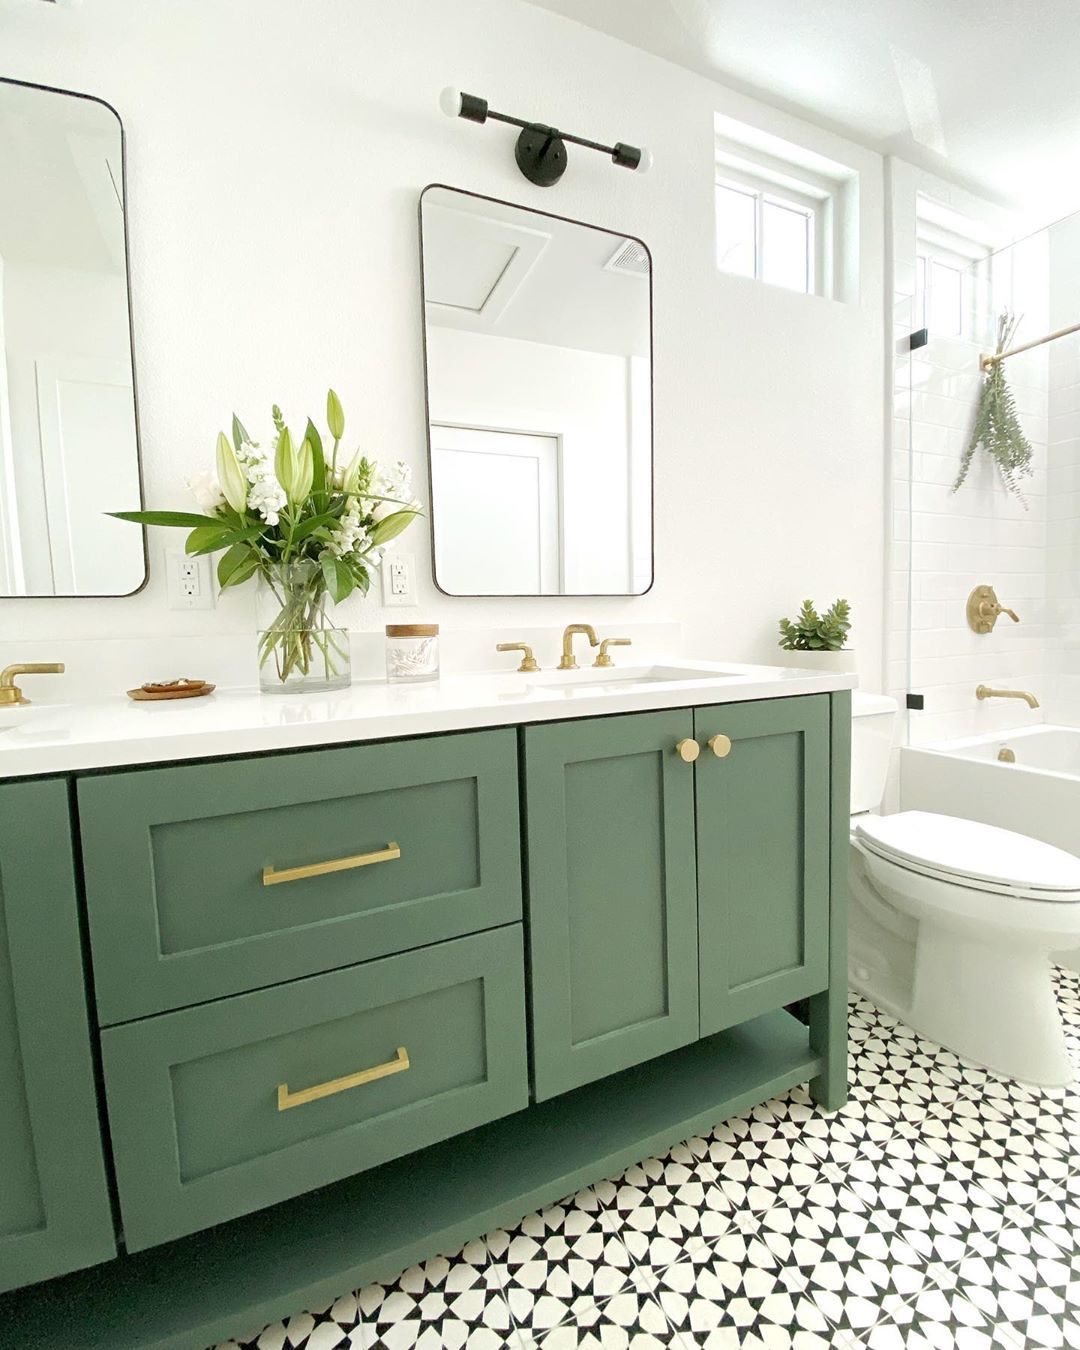 Pin By Ashley Metcalfe On Update House Green Bathroom Furniture Dark Green Bathrooms Green Bathroom Vanity [ 1350 x 1080 Pixel ]